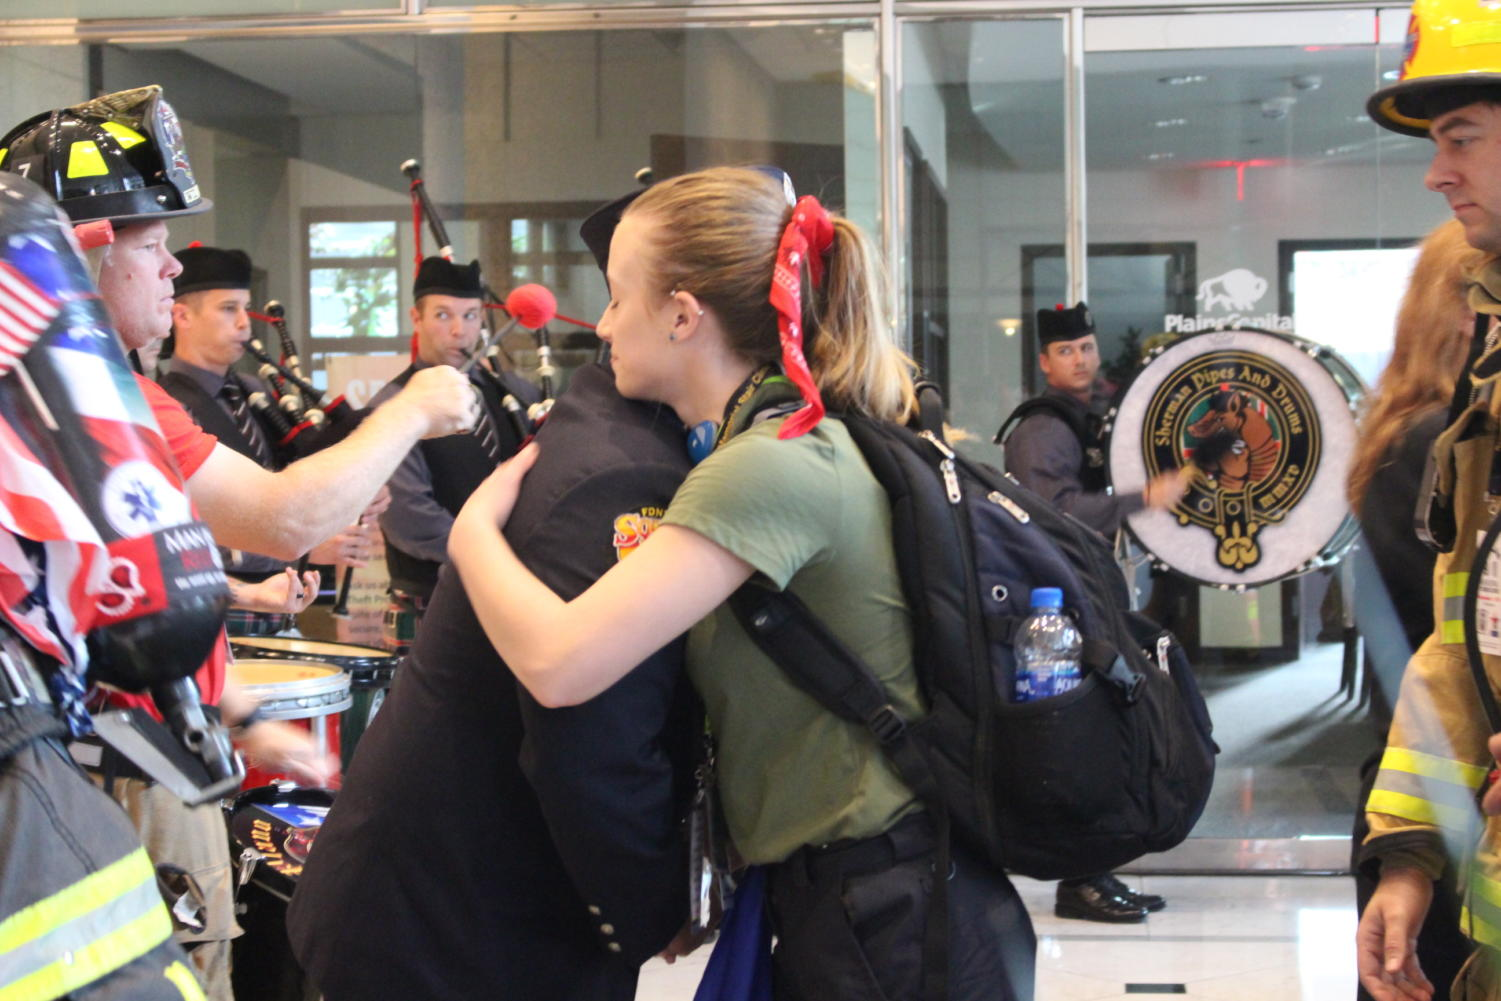 First responders from all over Texas and the U.S. get ready to start their climb for the Dallas 9/11 Memorial Stair Climb at the Renaissance Tower in Dallas. First responders climbed 110 flights of stairs on Saturday to remember those who died resulting from the Sept. 11, 2001 attacks in New York.